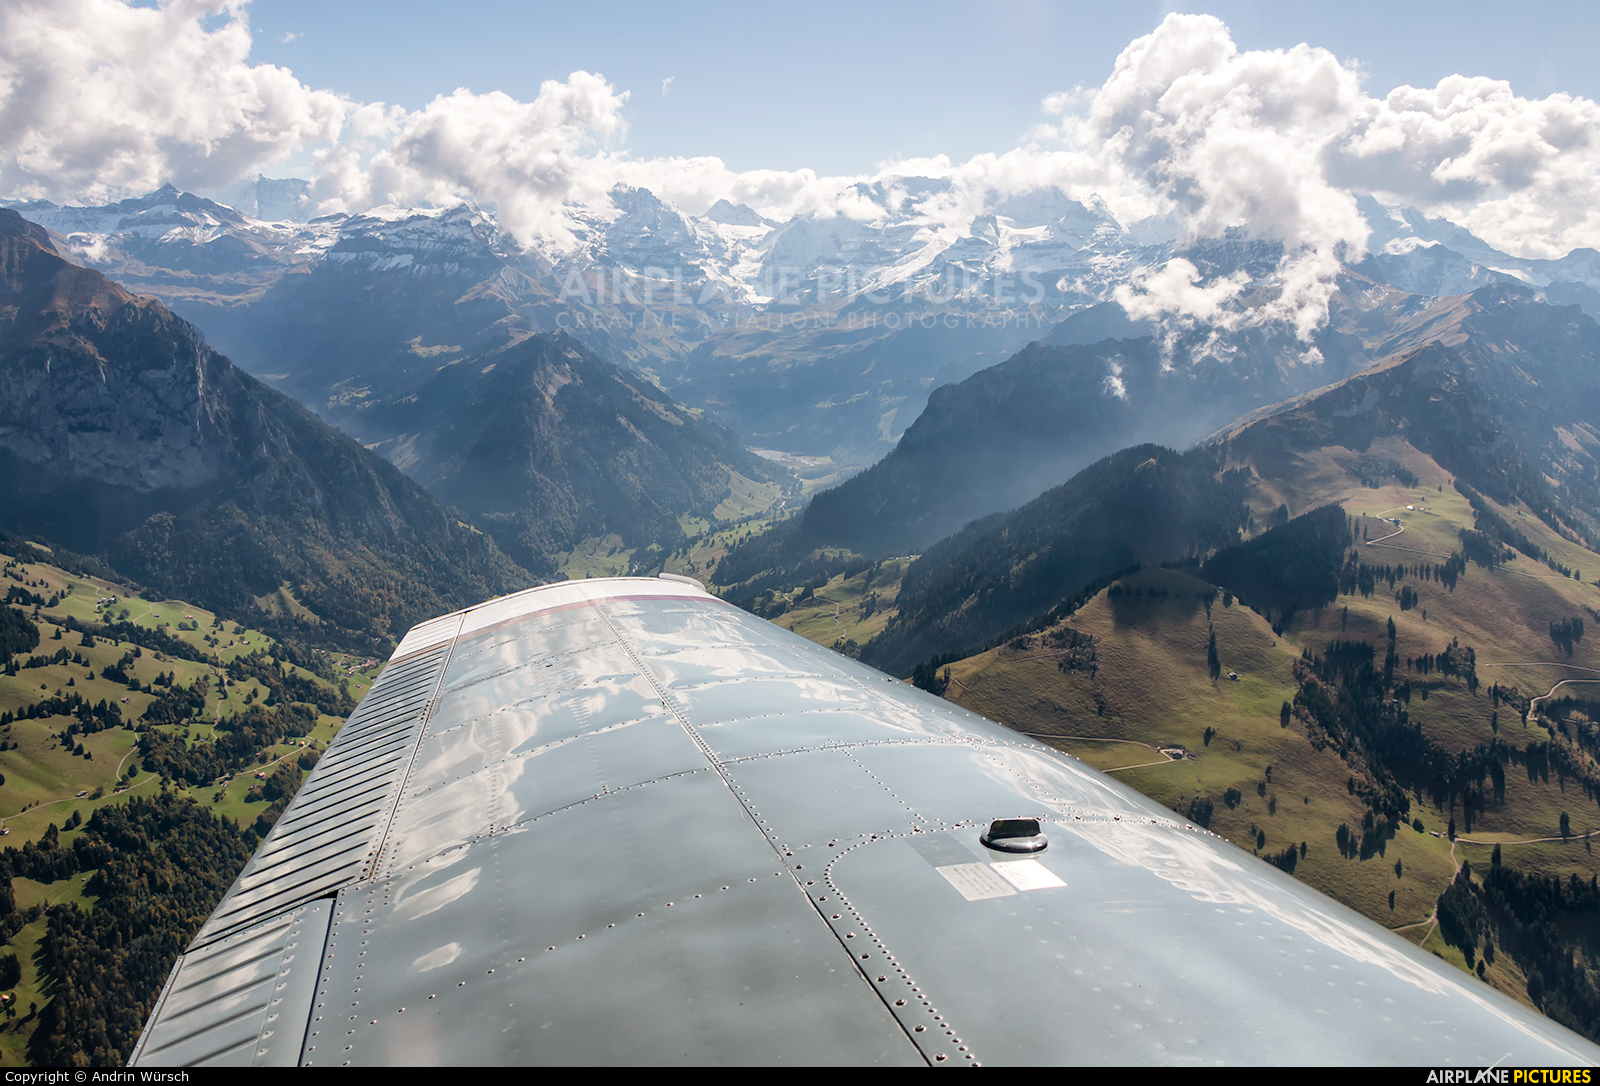 Albis Wings HB-POX aircraft at In Flight - Switzerland